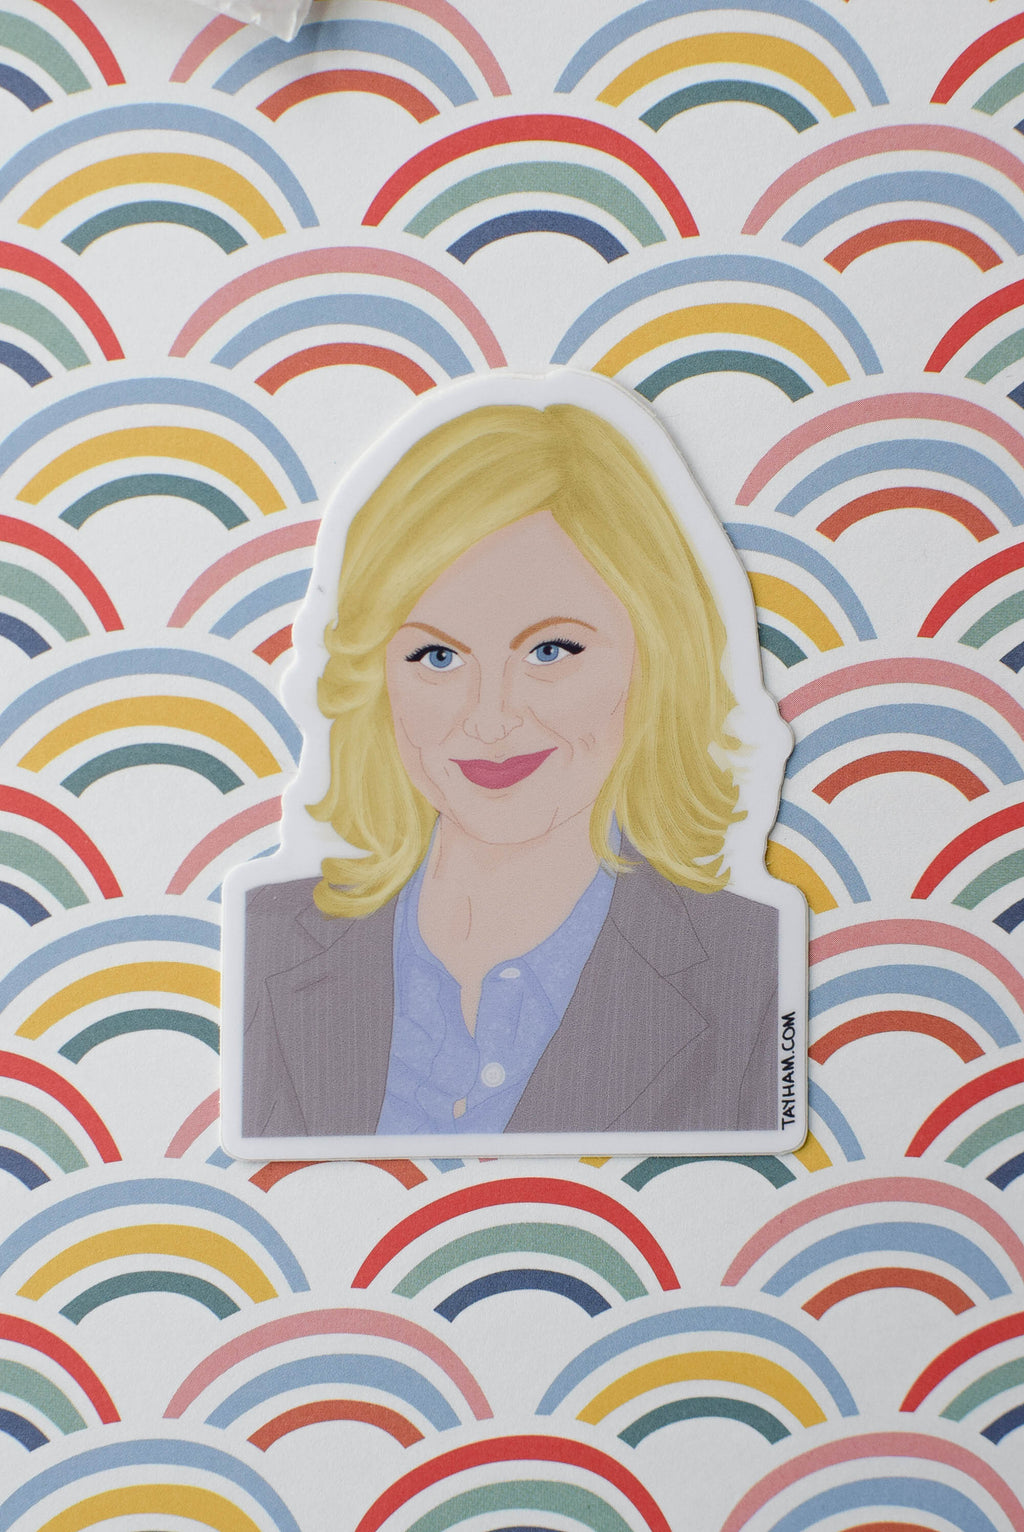 Leslie know sticker